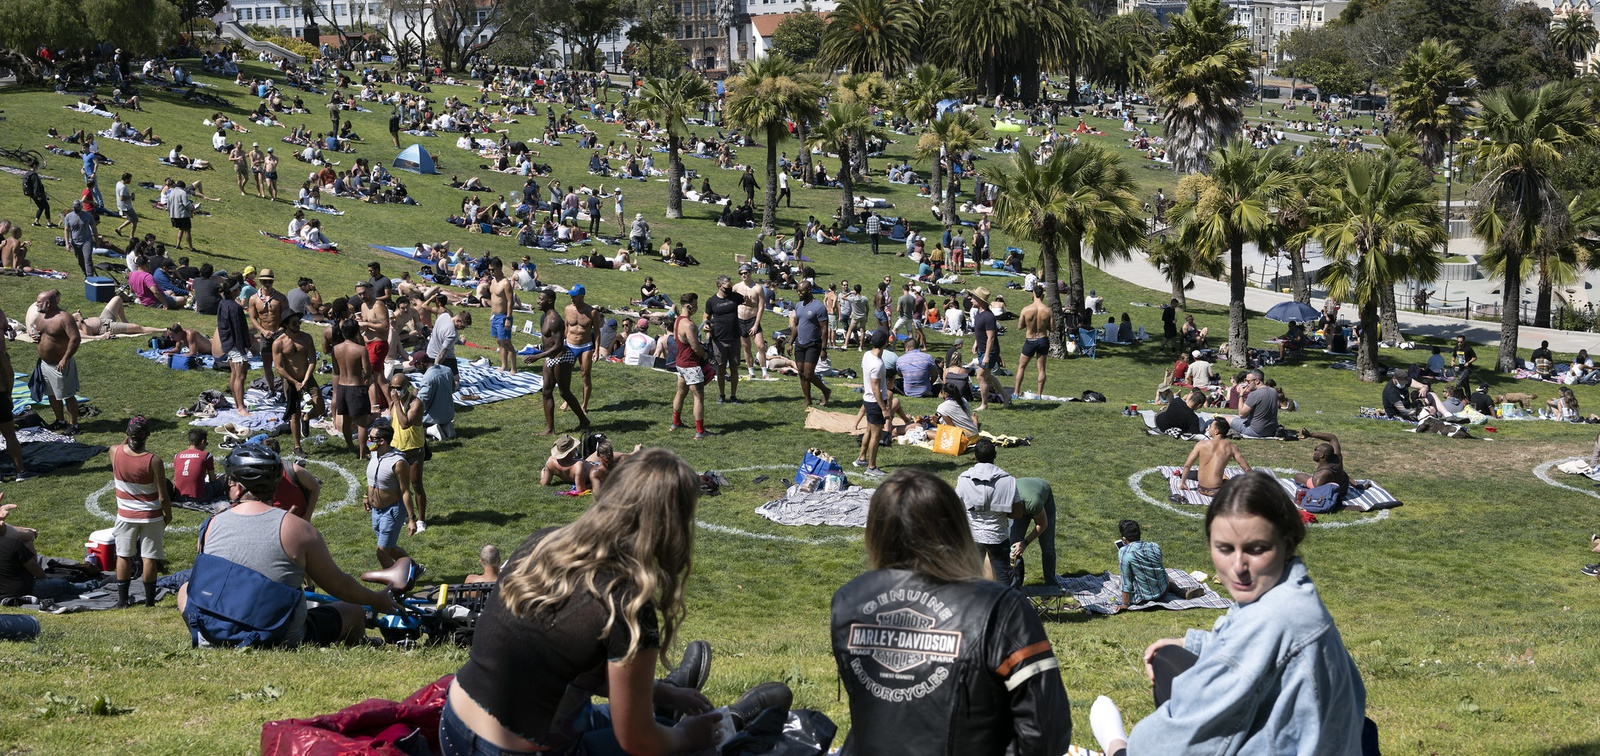 Few mayors expect to keep COVID-inspired changes to public spaces, survey finds